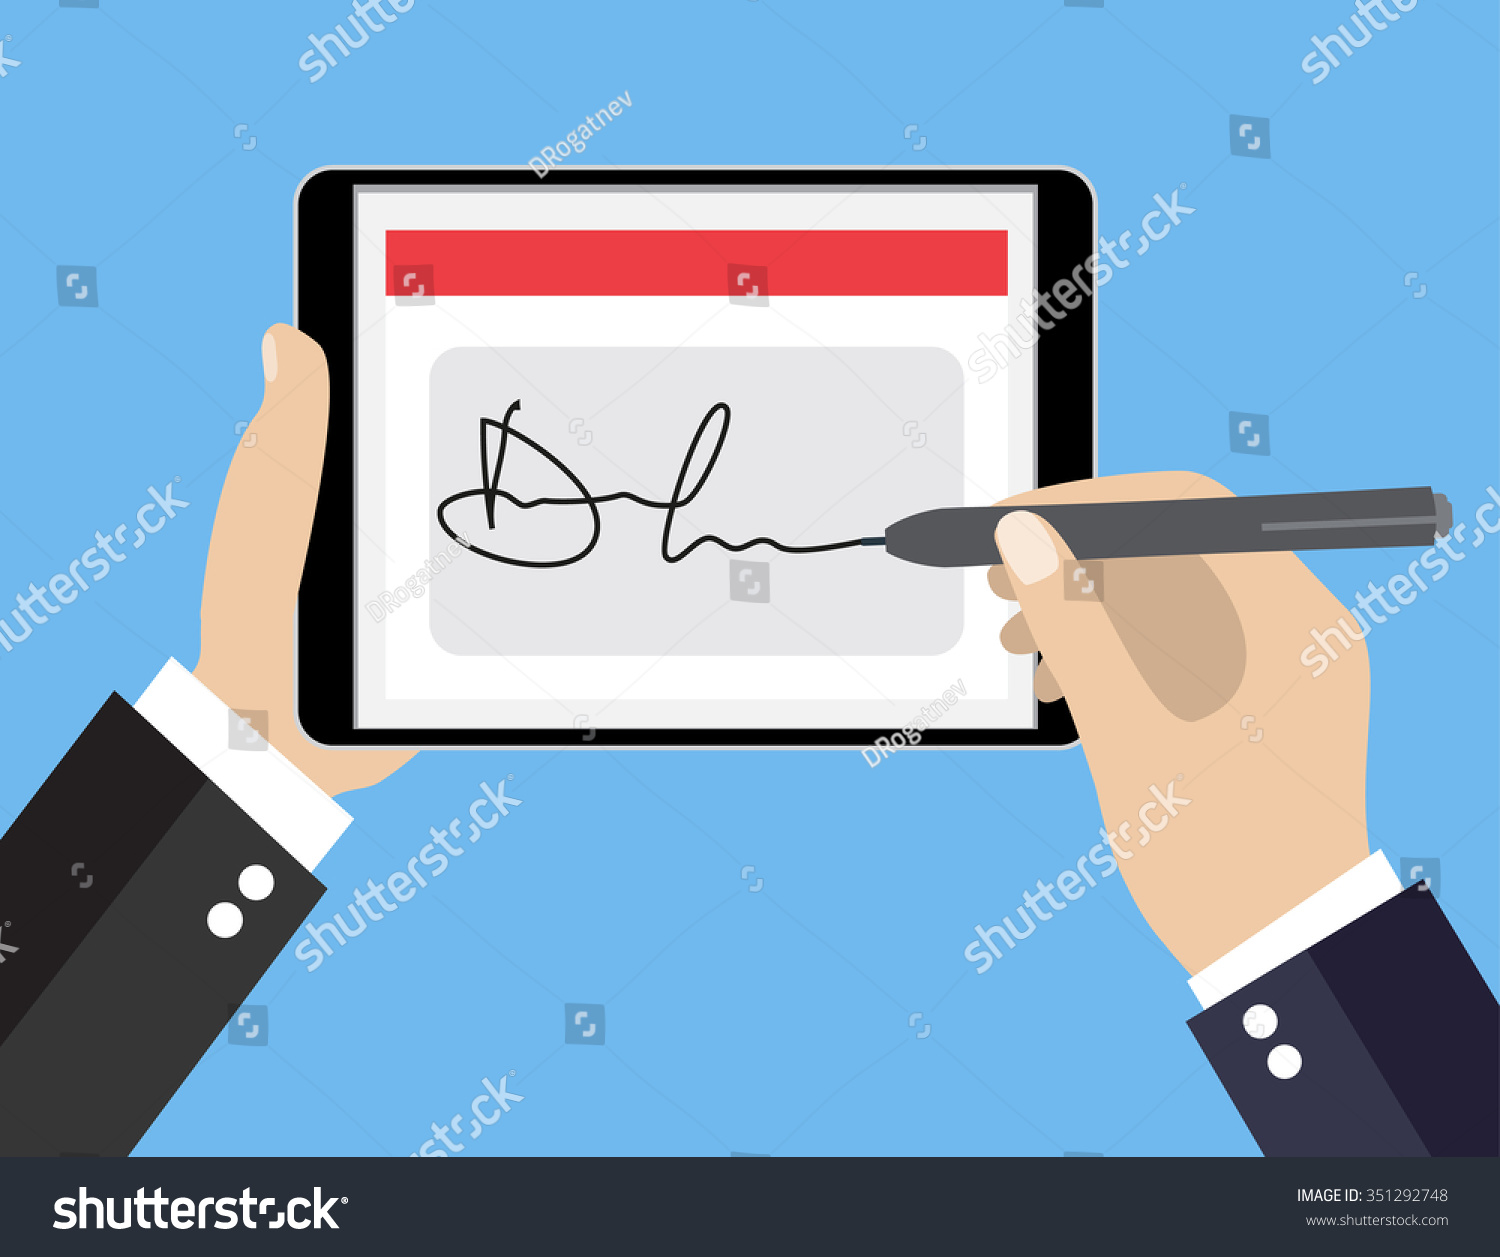 Businessman Hands Signing Digital Signature On Tablet